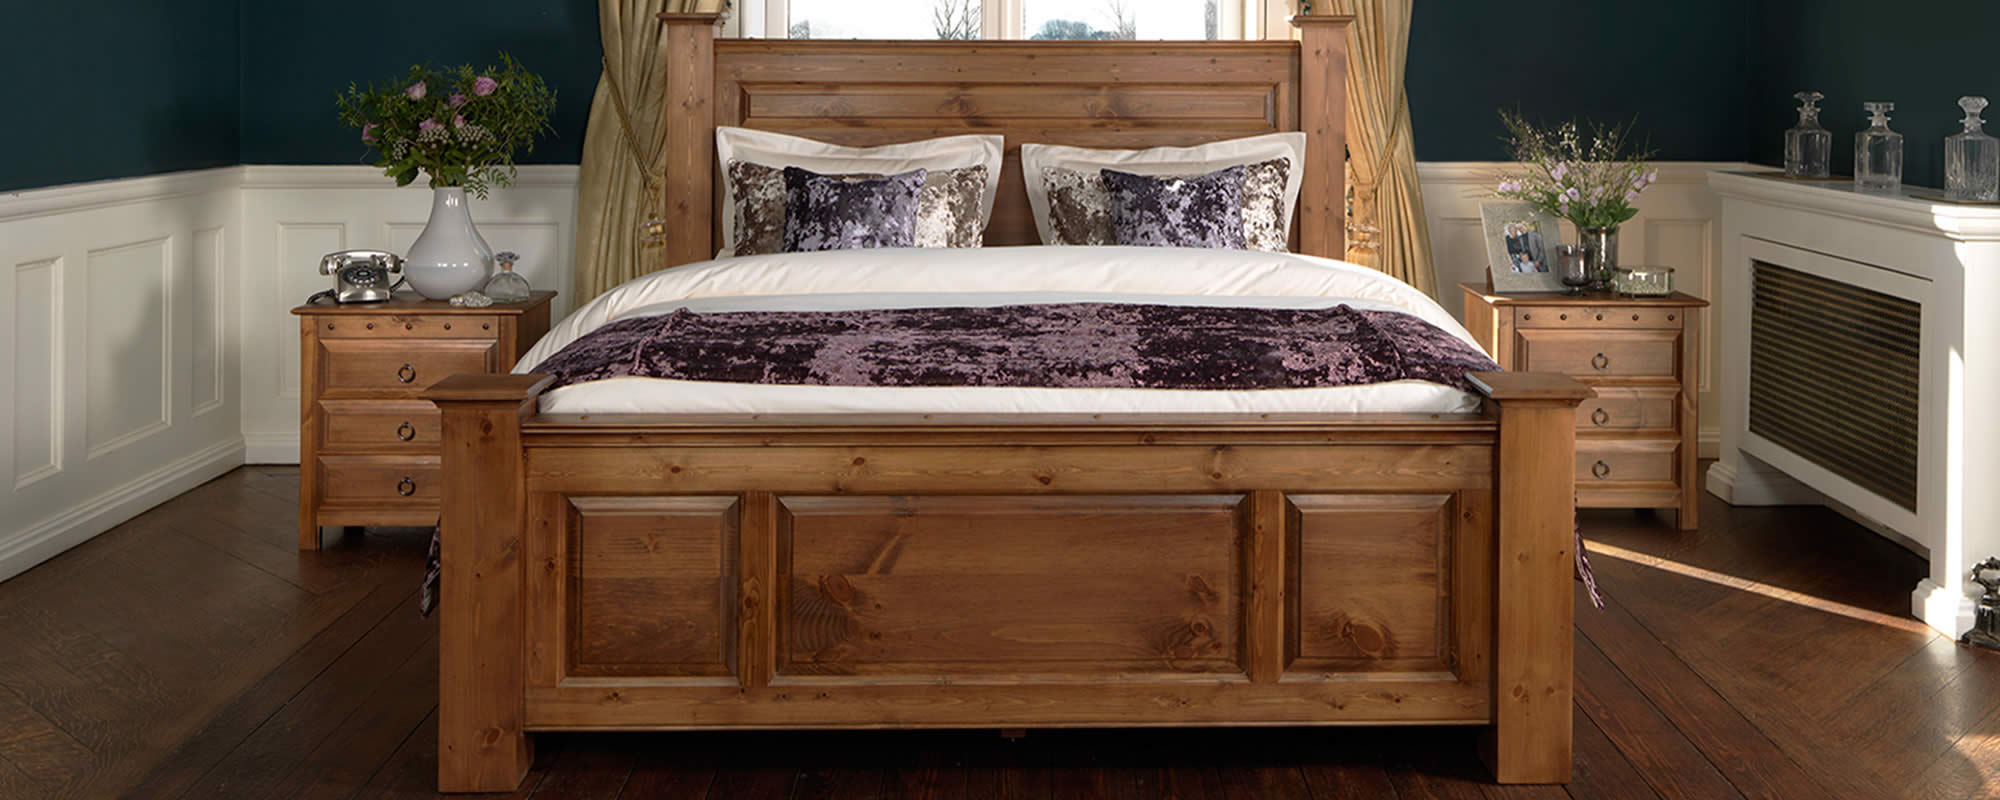 Split Master Bedroom Handmade Solid Oak Beds Sleigh Four Poster